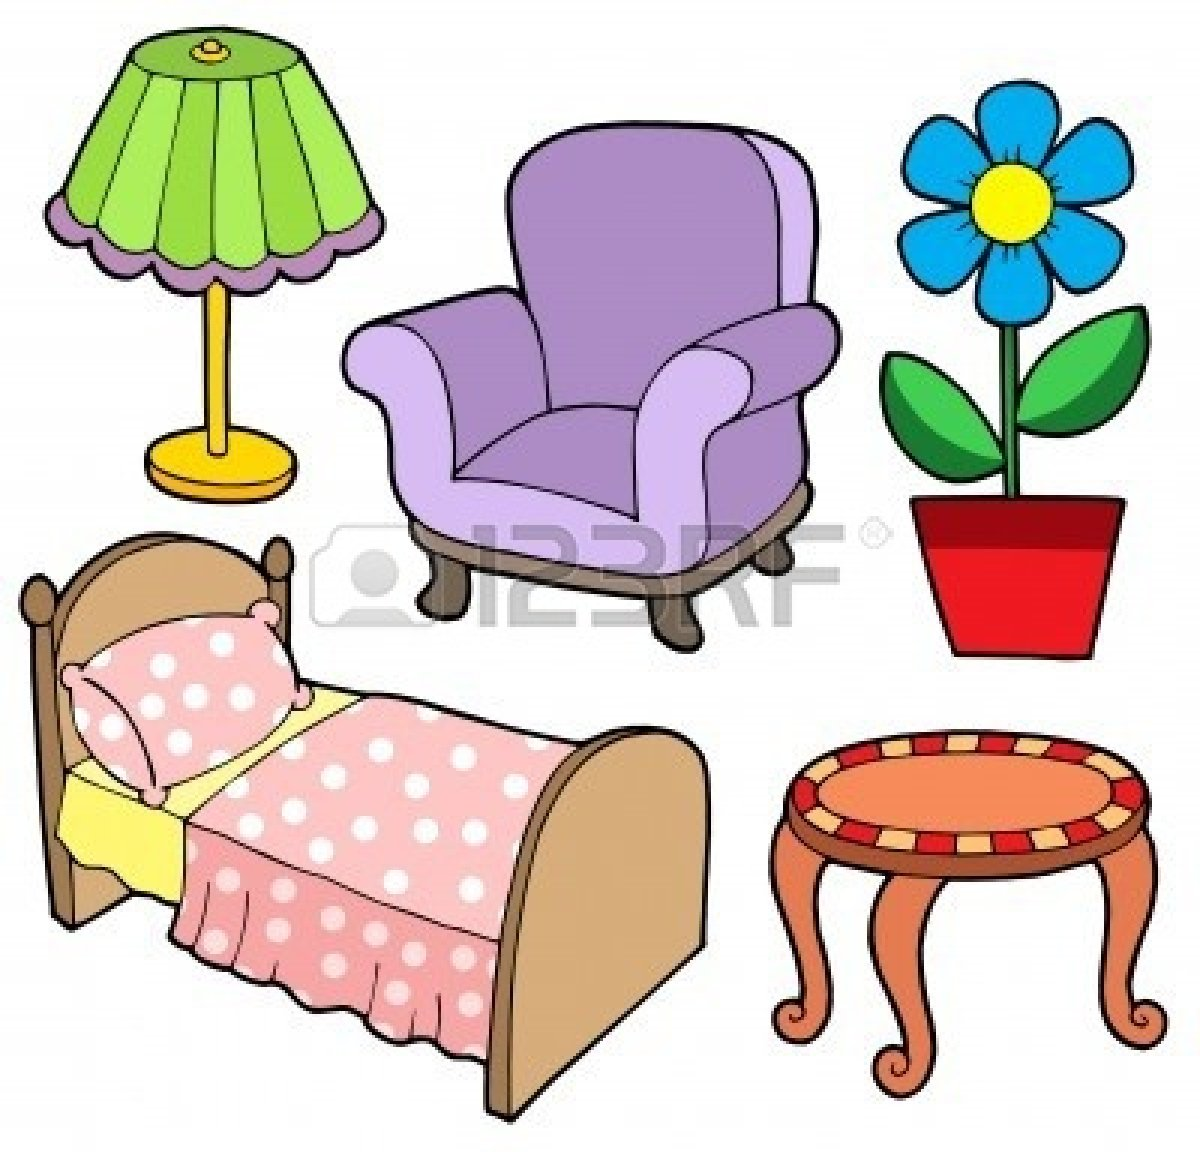 Furniture clipart. Panda free images furnitureclipart